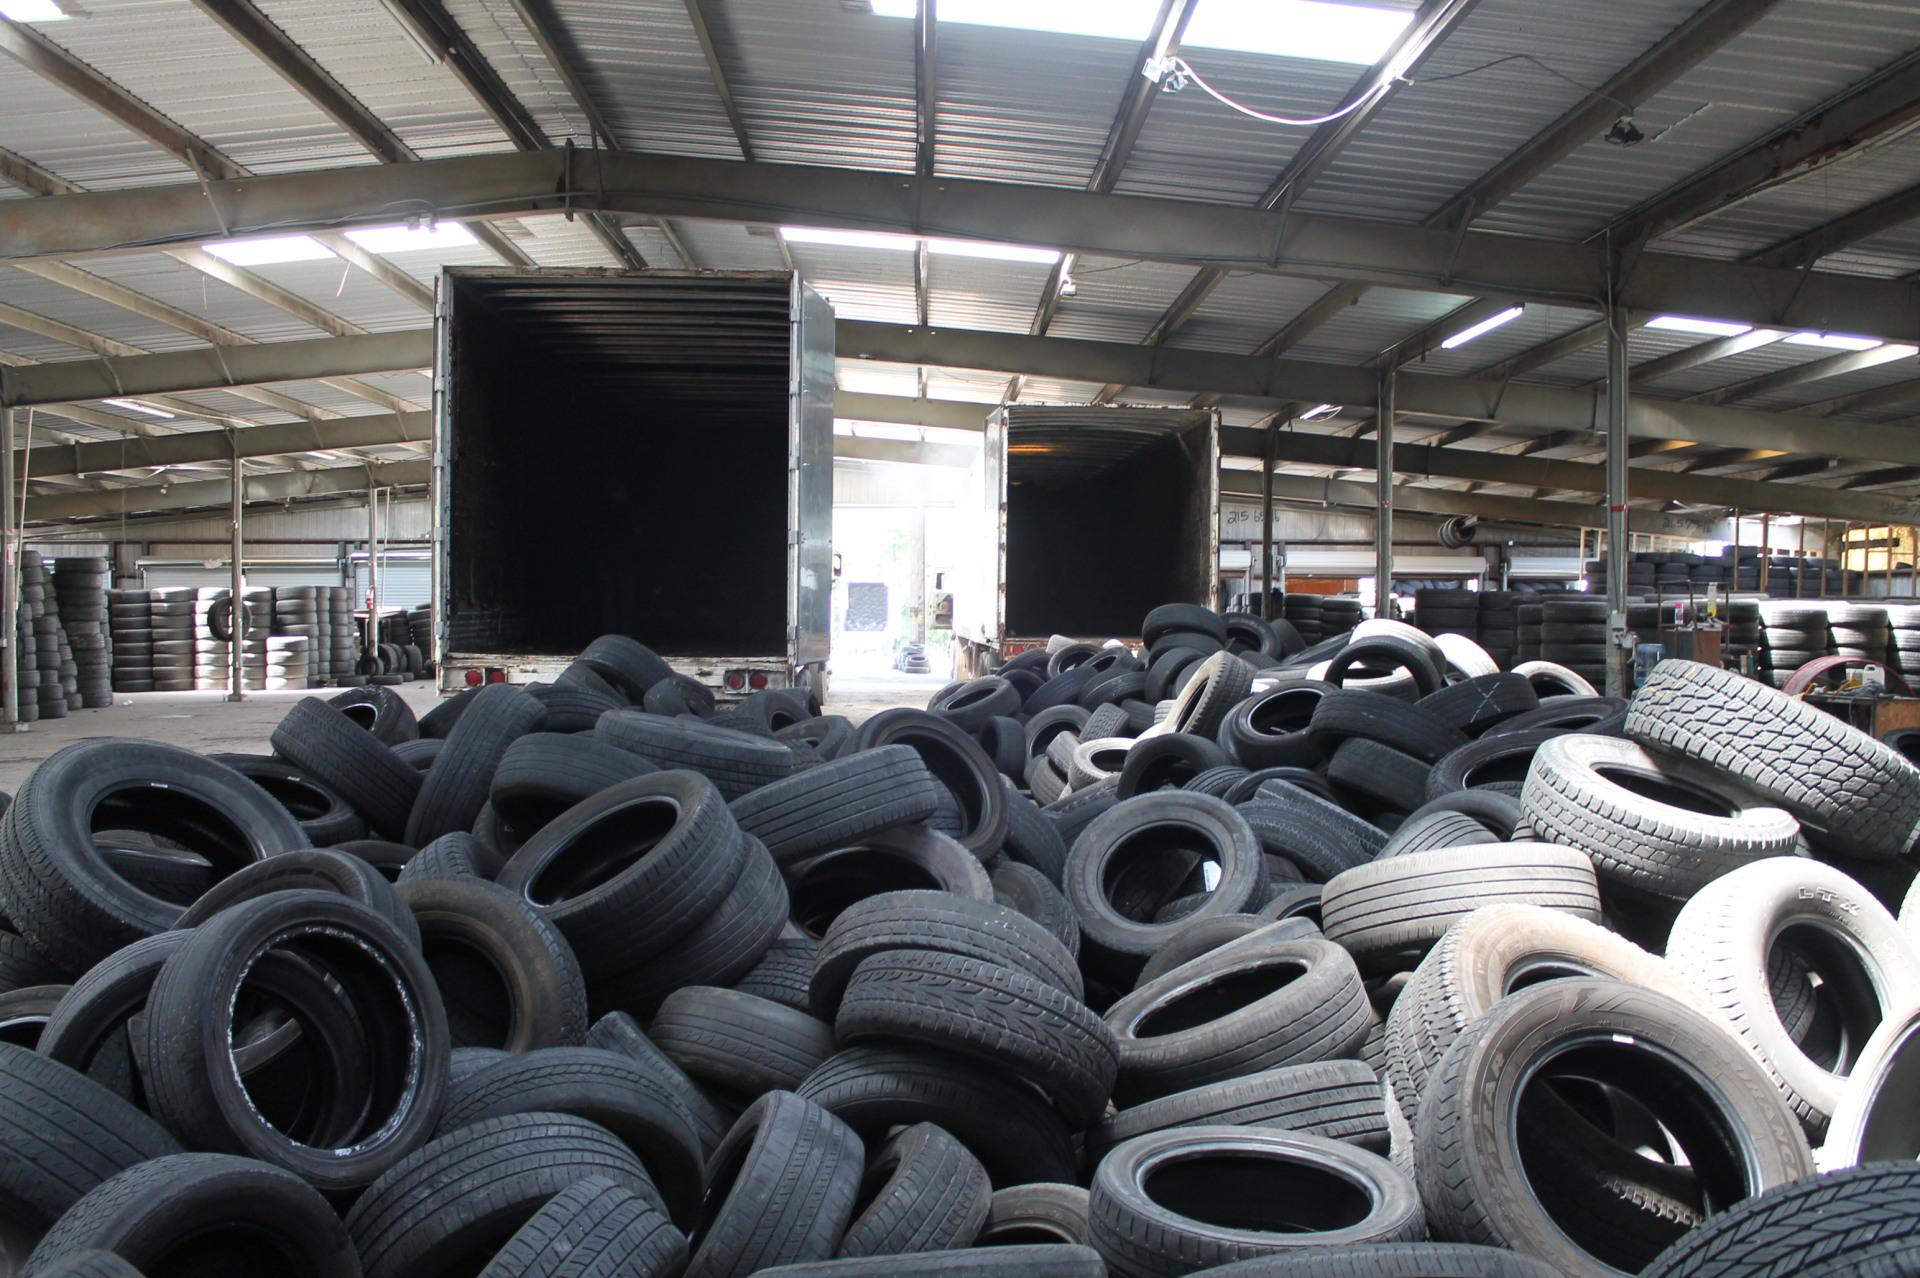 Recycled Tires ready for grading